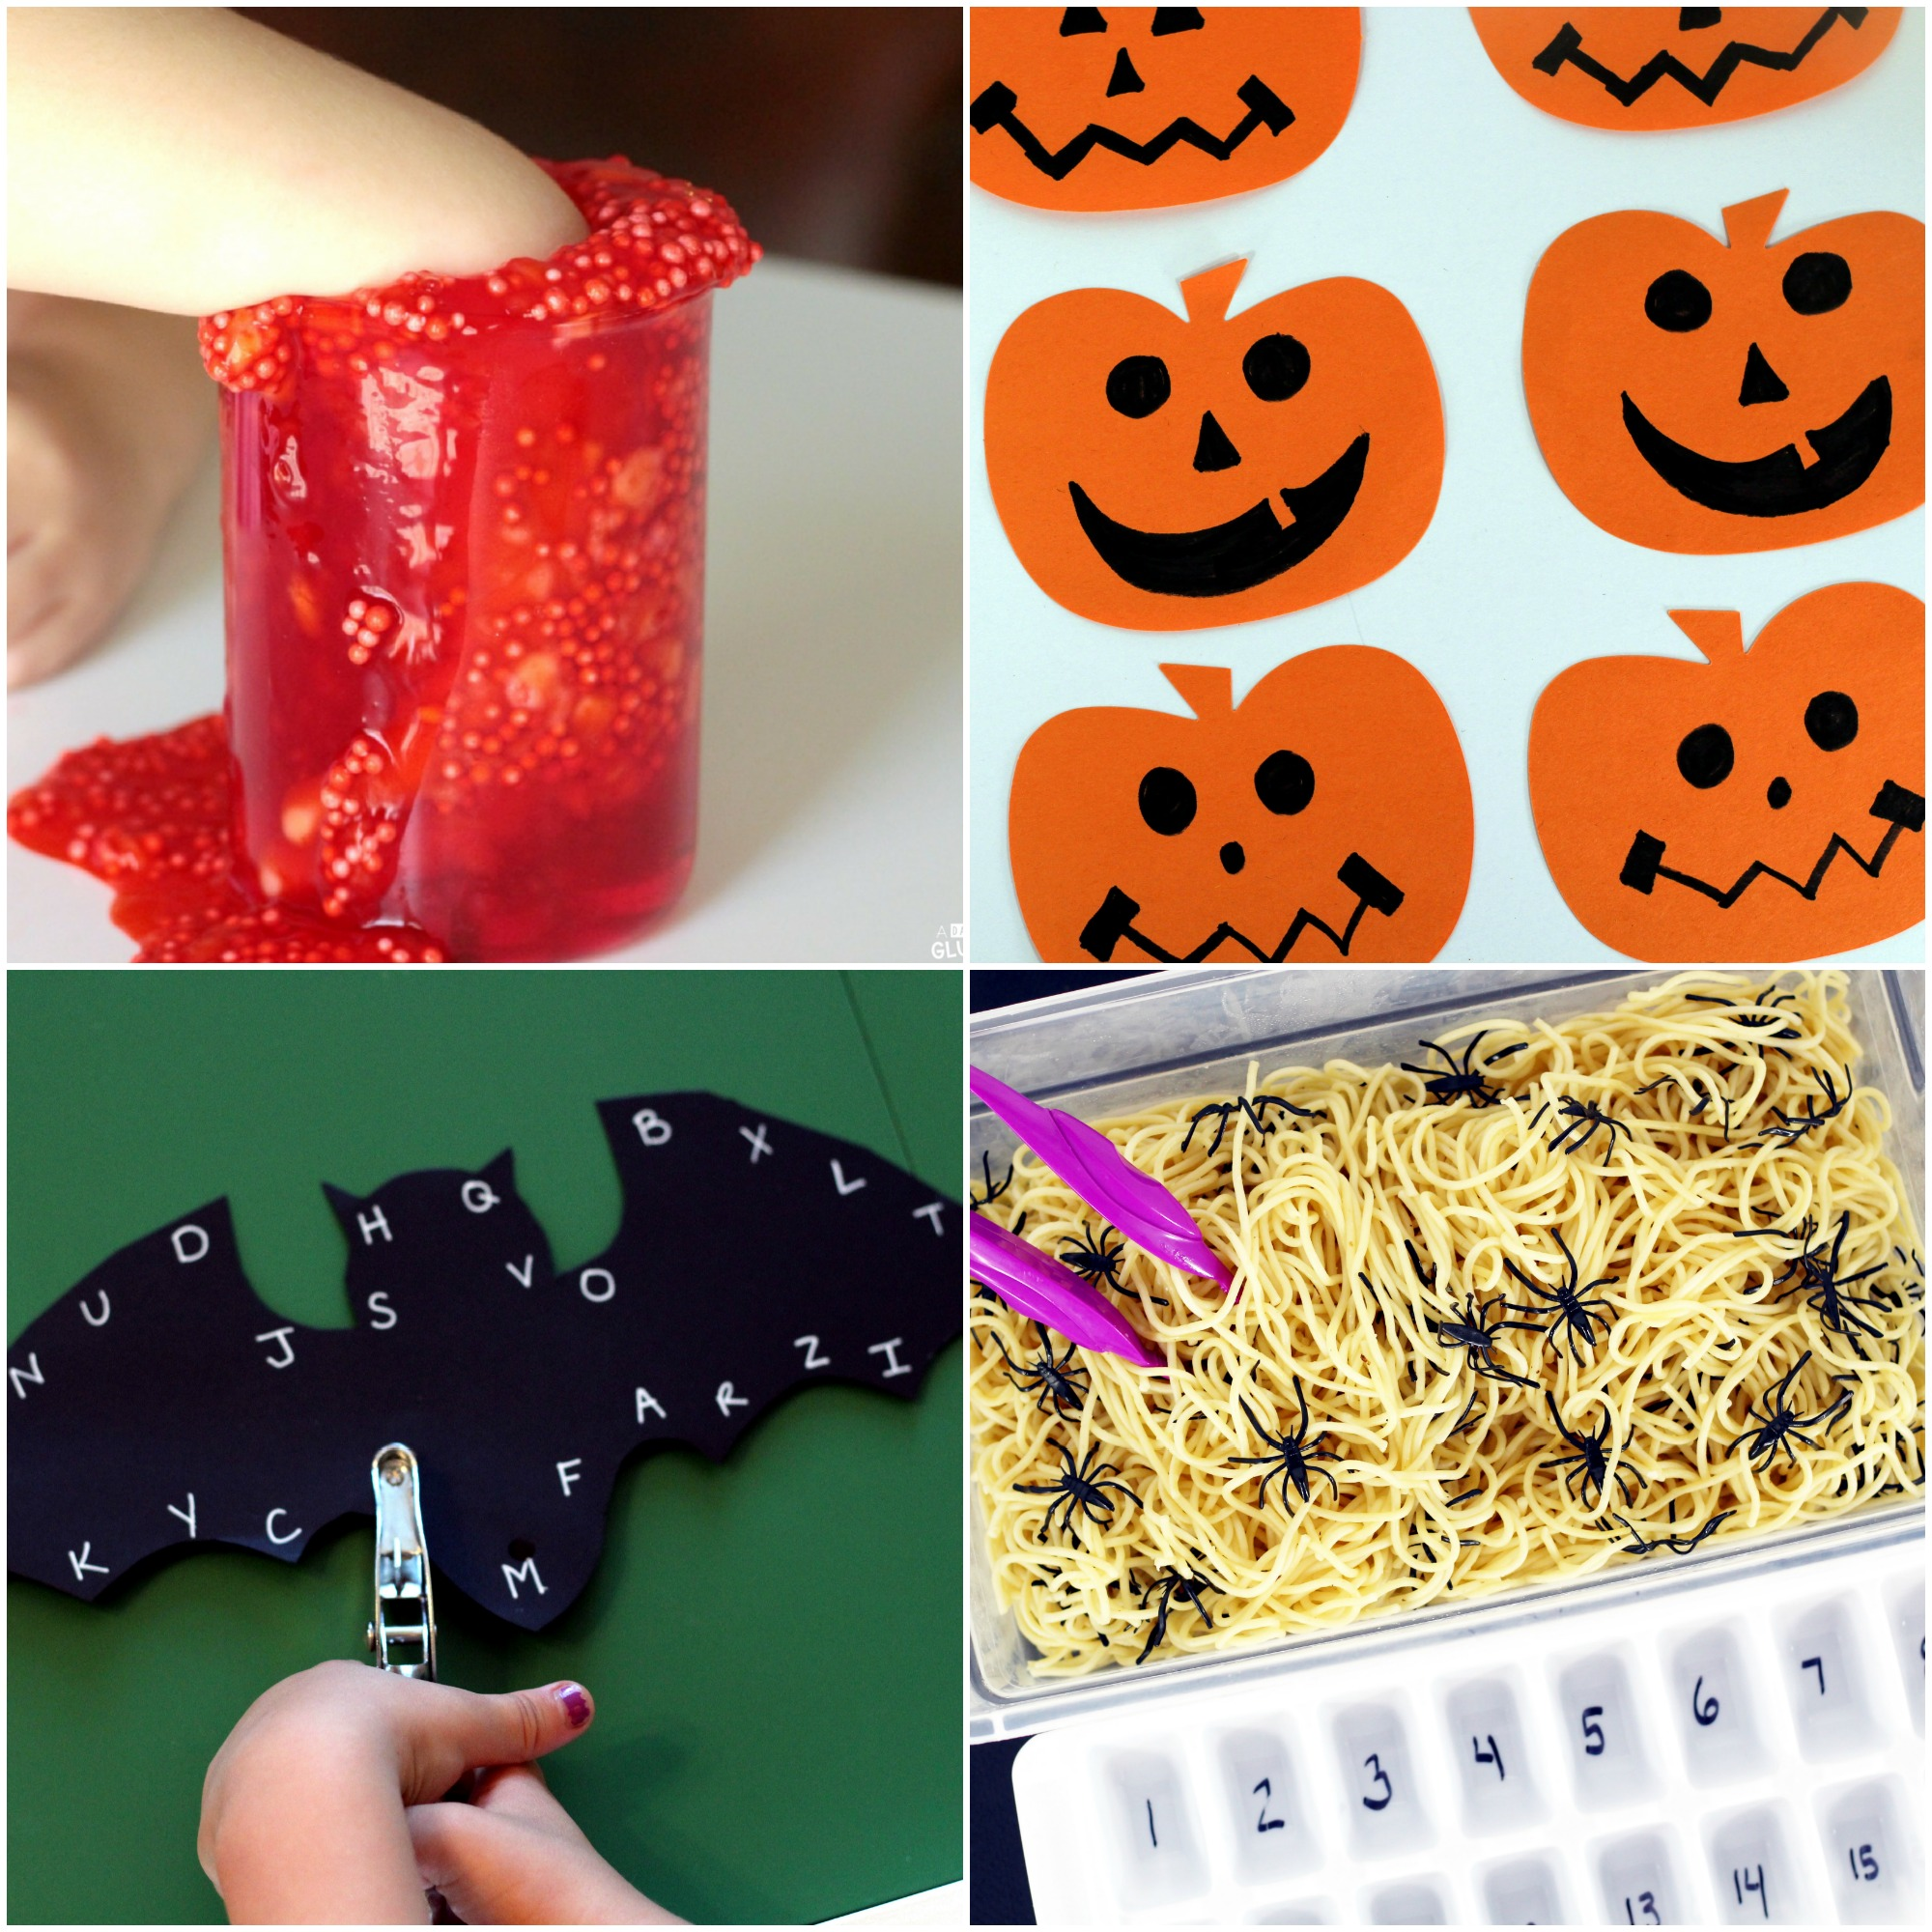 It's the time of year where students are OVERJOYED at all the candy and festivities that surround Halloween. While they are excited, slip in some halloween learning activities for little learners!